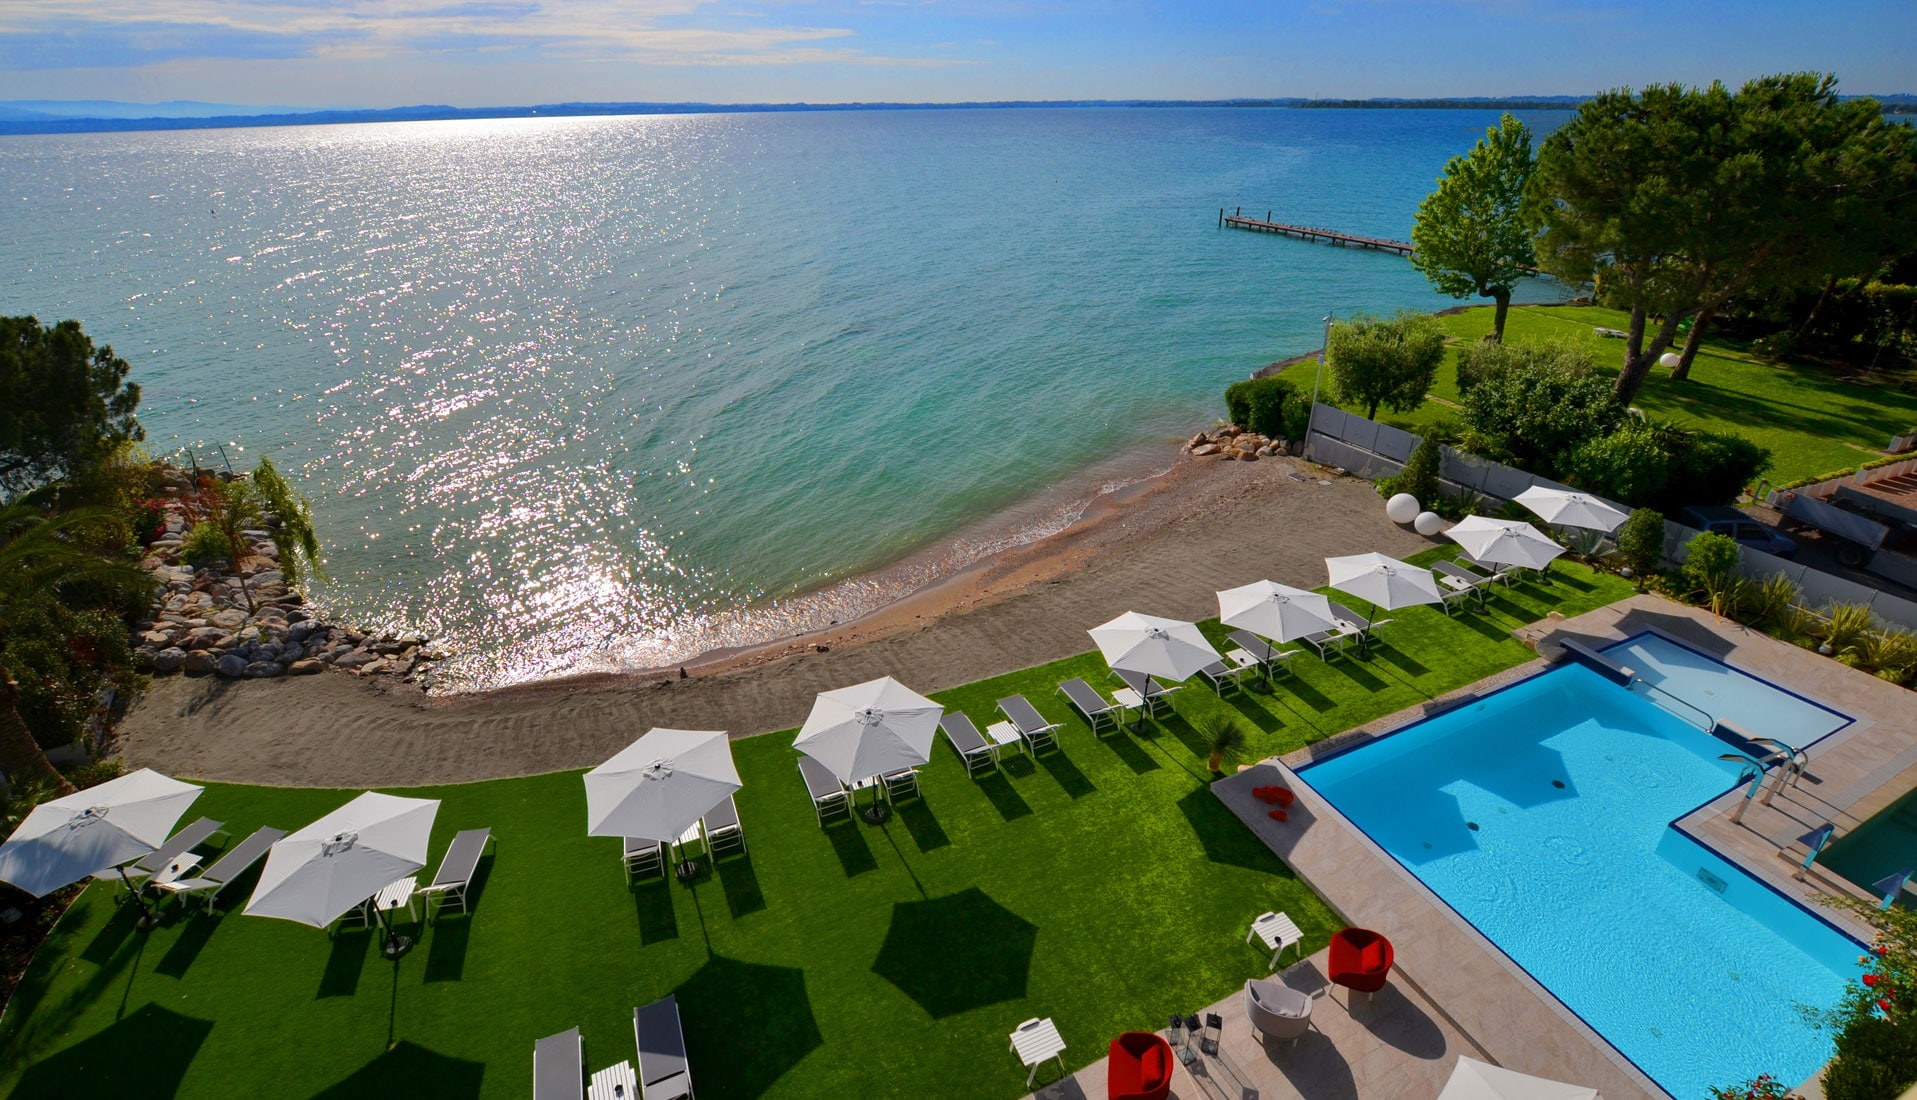 Hotel SPA Sirmione Lake Garda